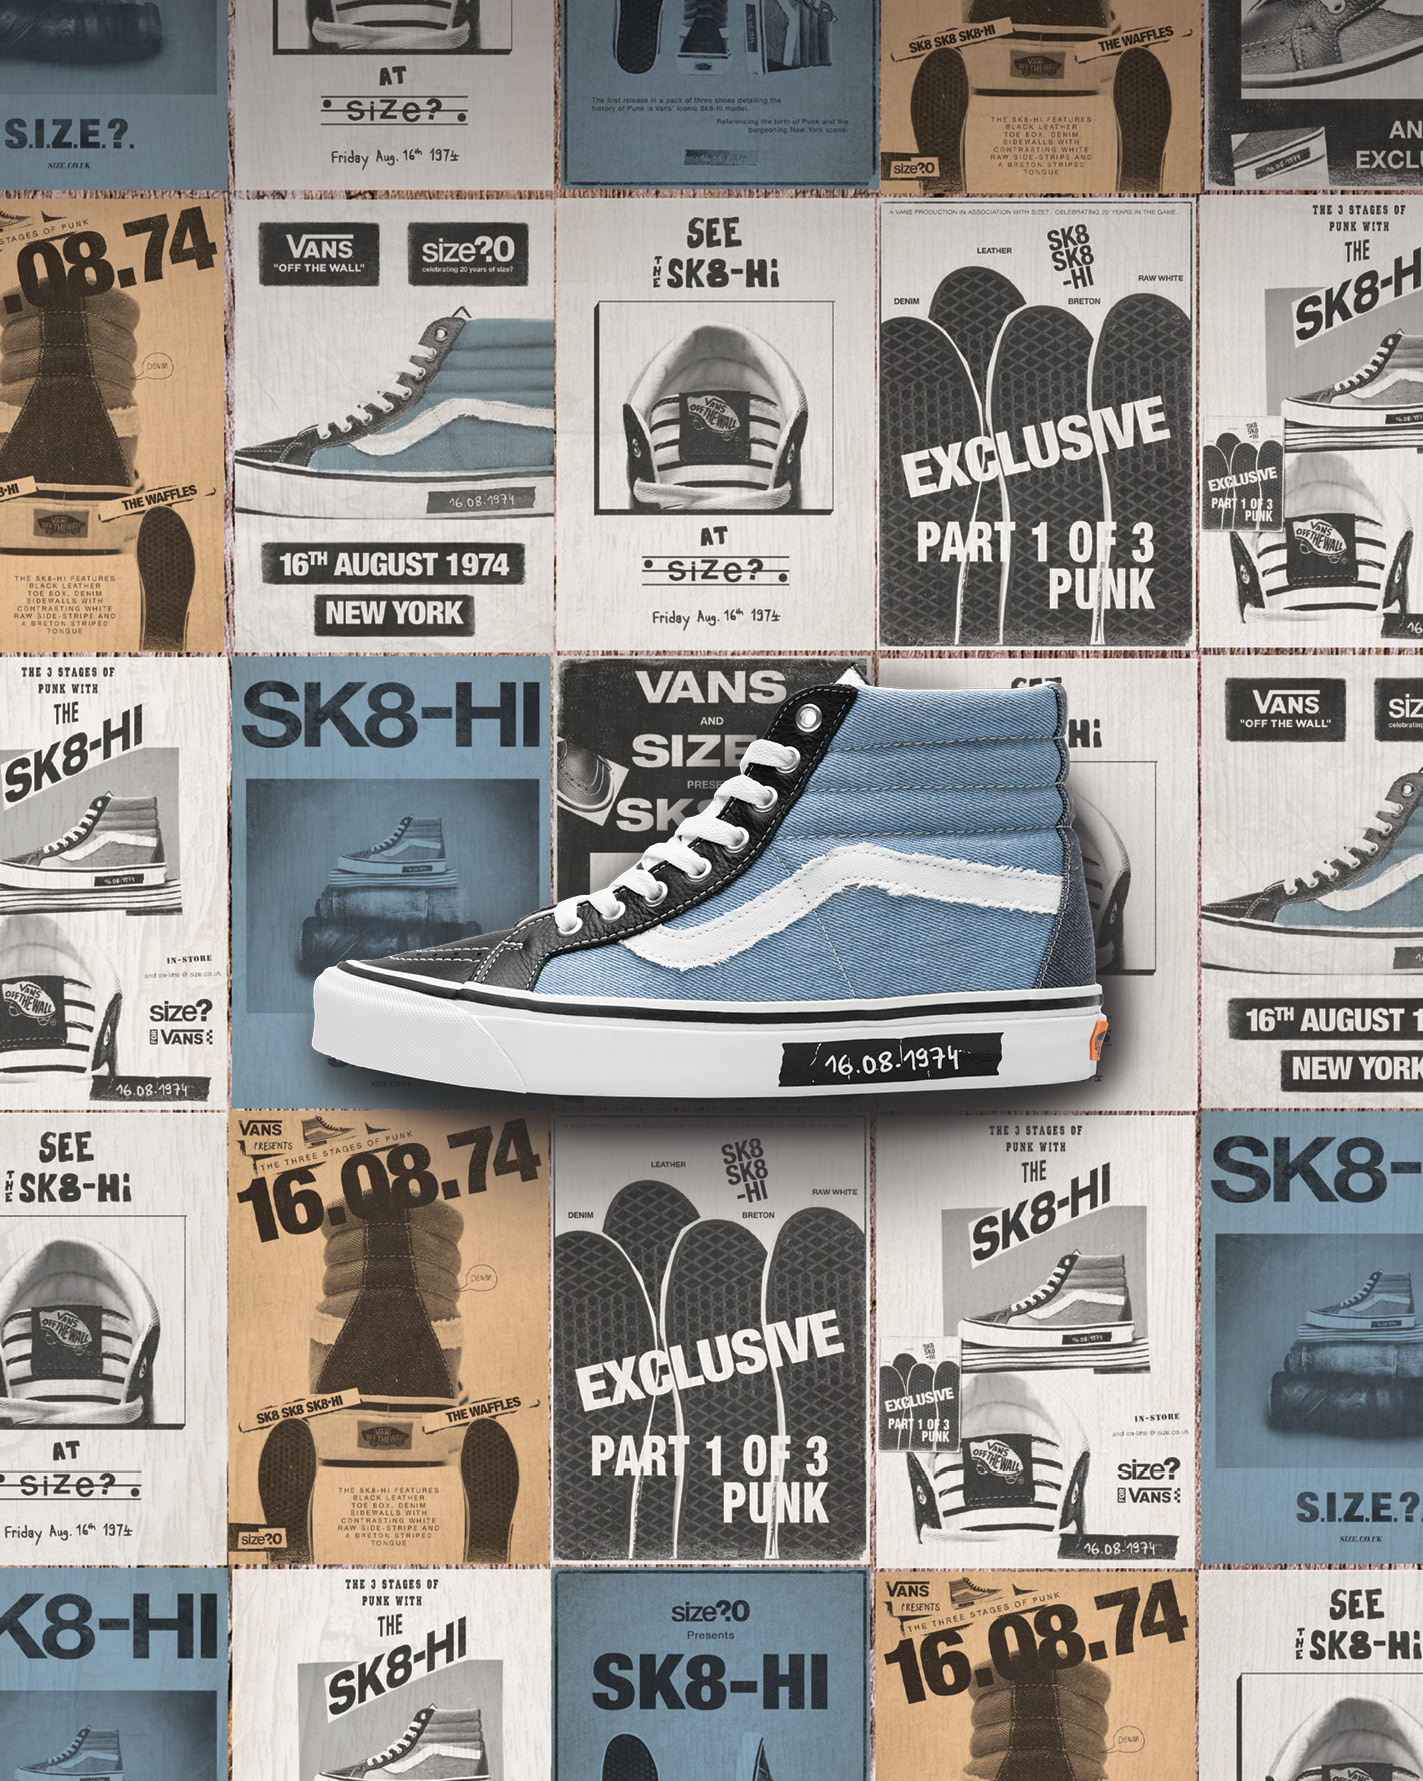 Vans Sk8-Hi Blue and Navy